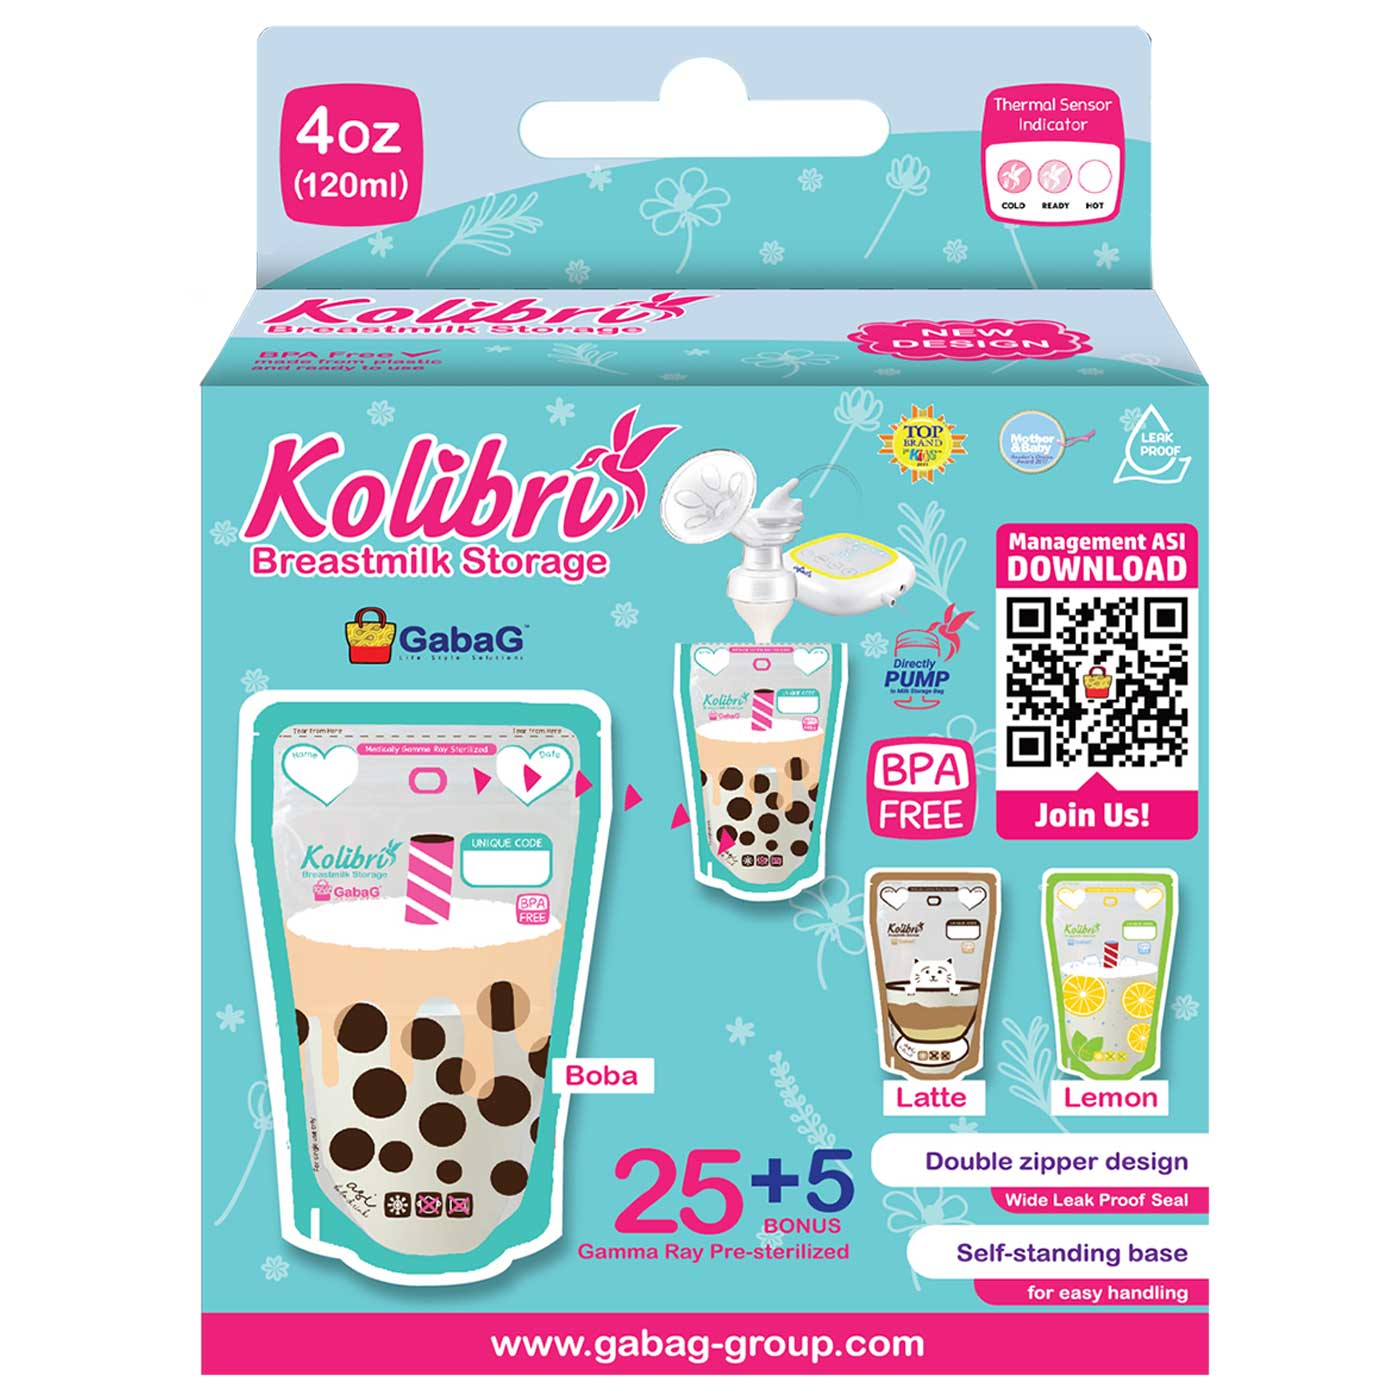 Gabag Kolibri Breastmilk Storage Bag 120cc Boba